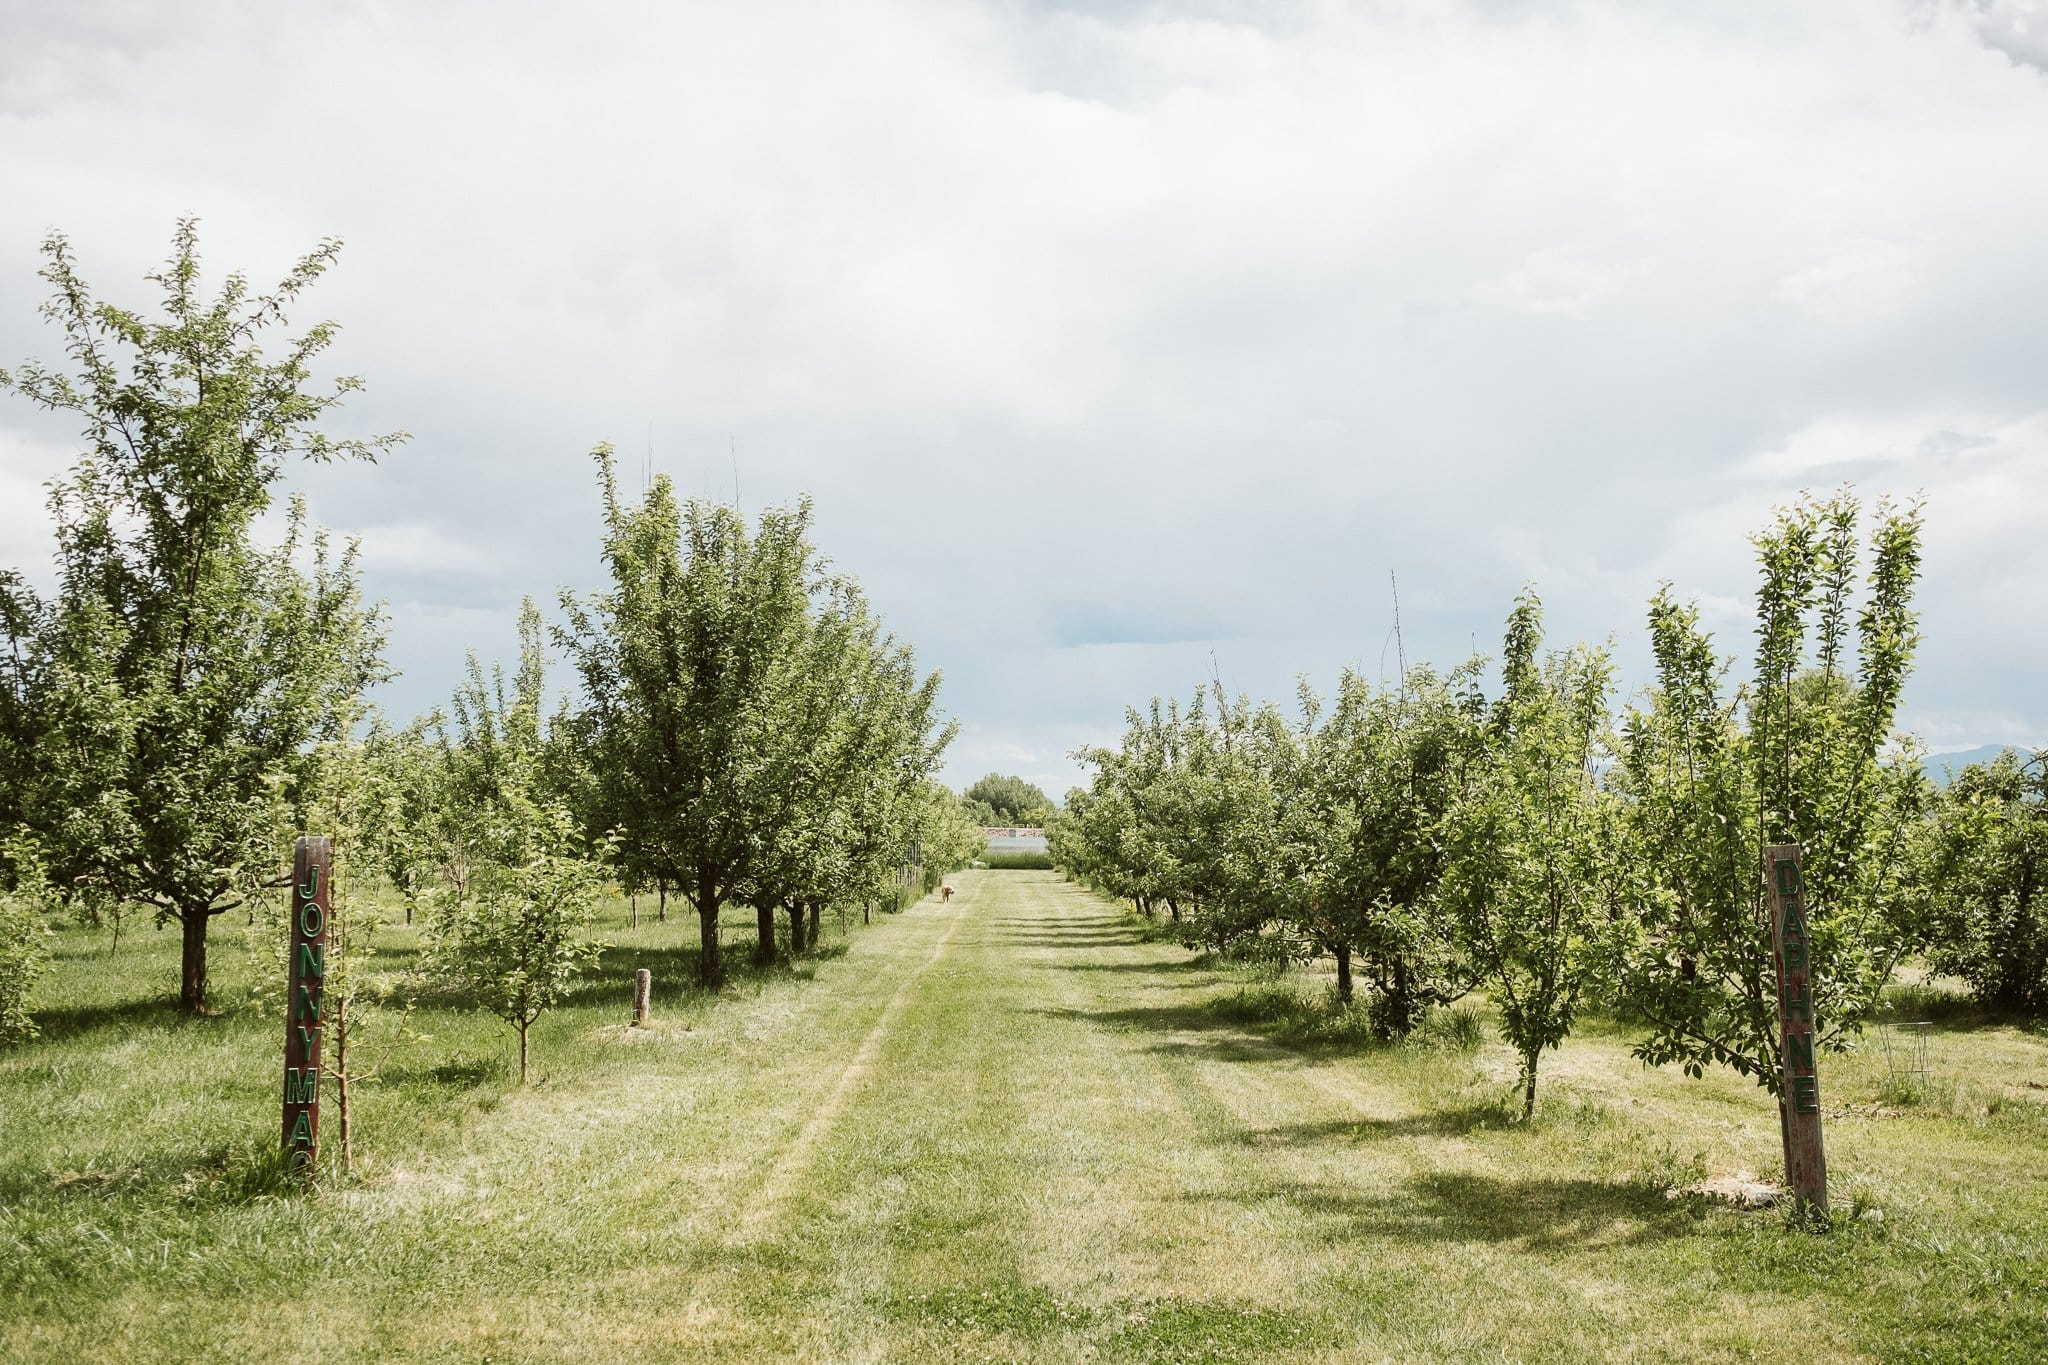 YA YA Farm & Orchard wedding venue outside Longmont and Lyons Colorado